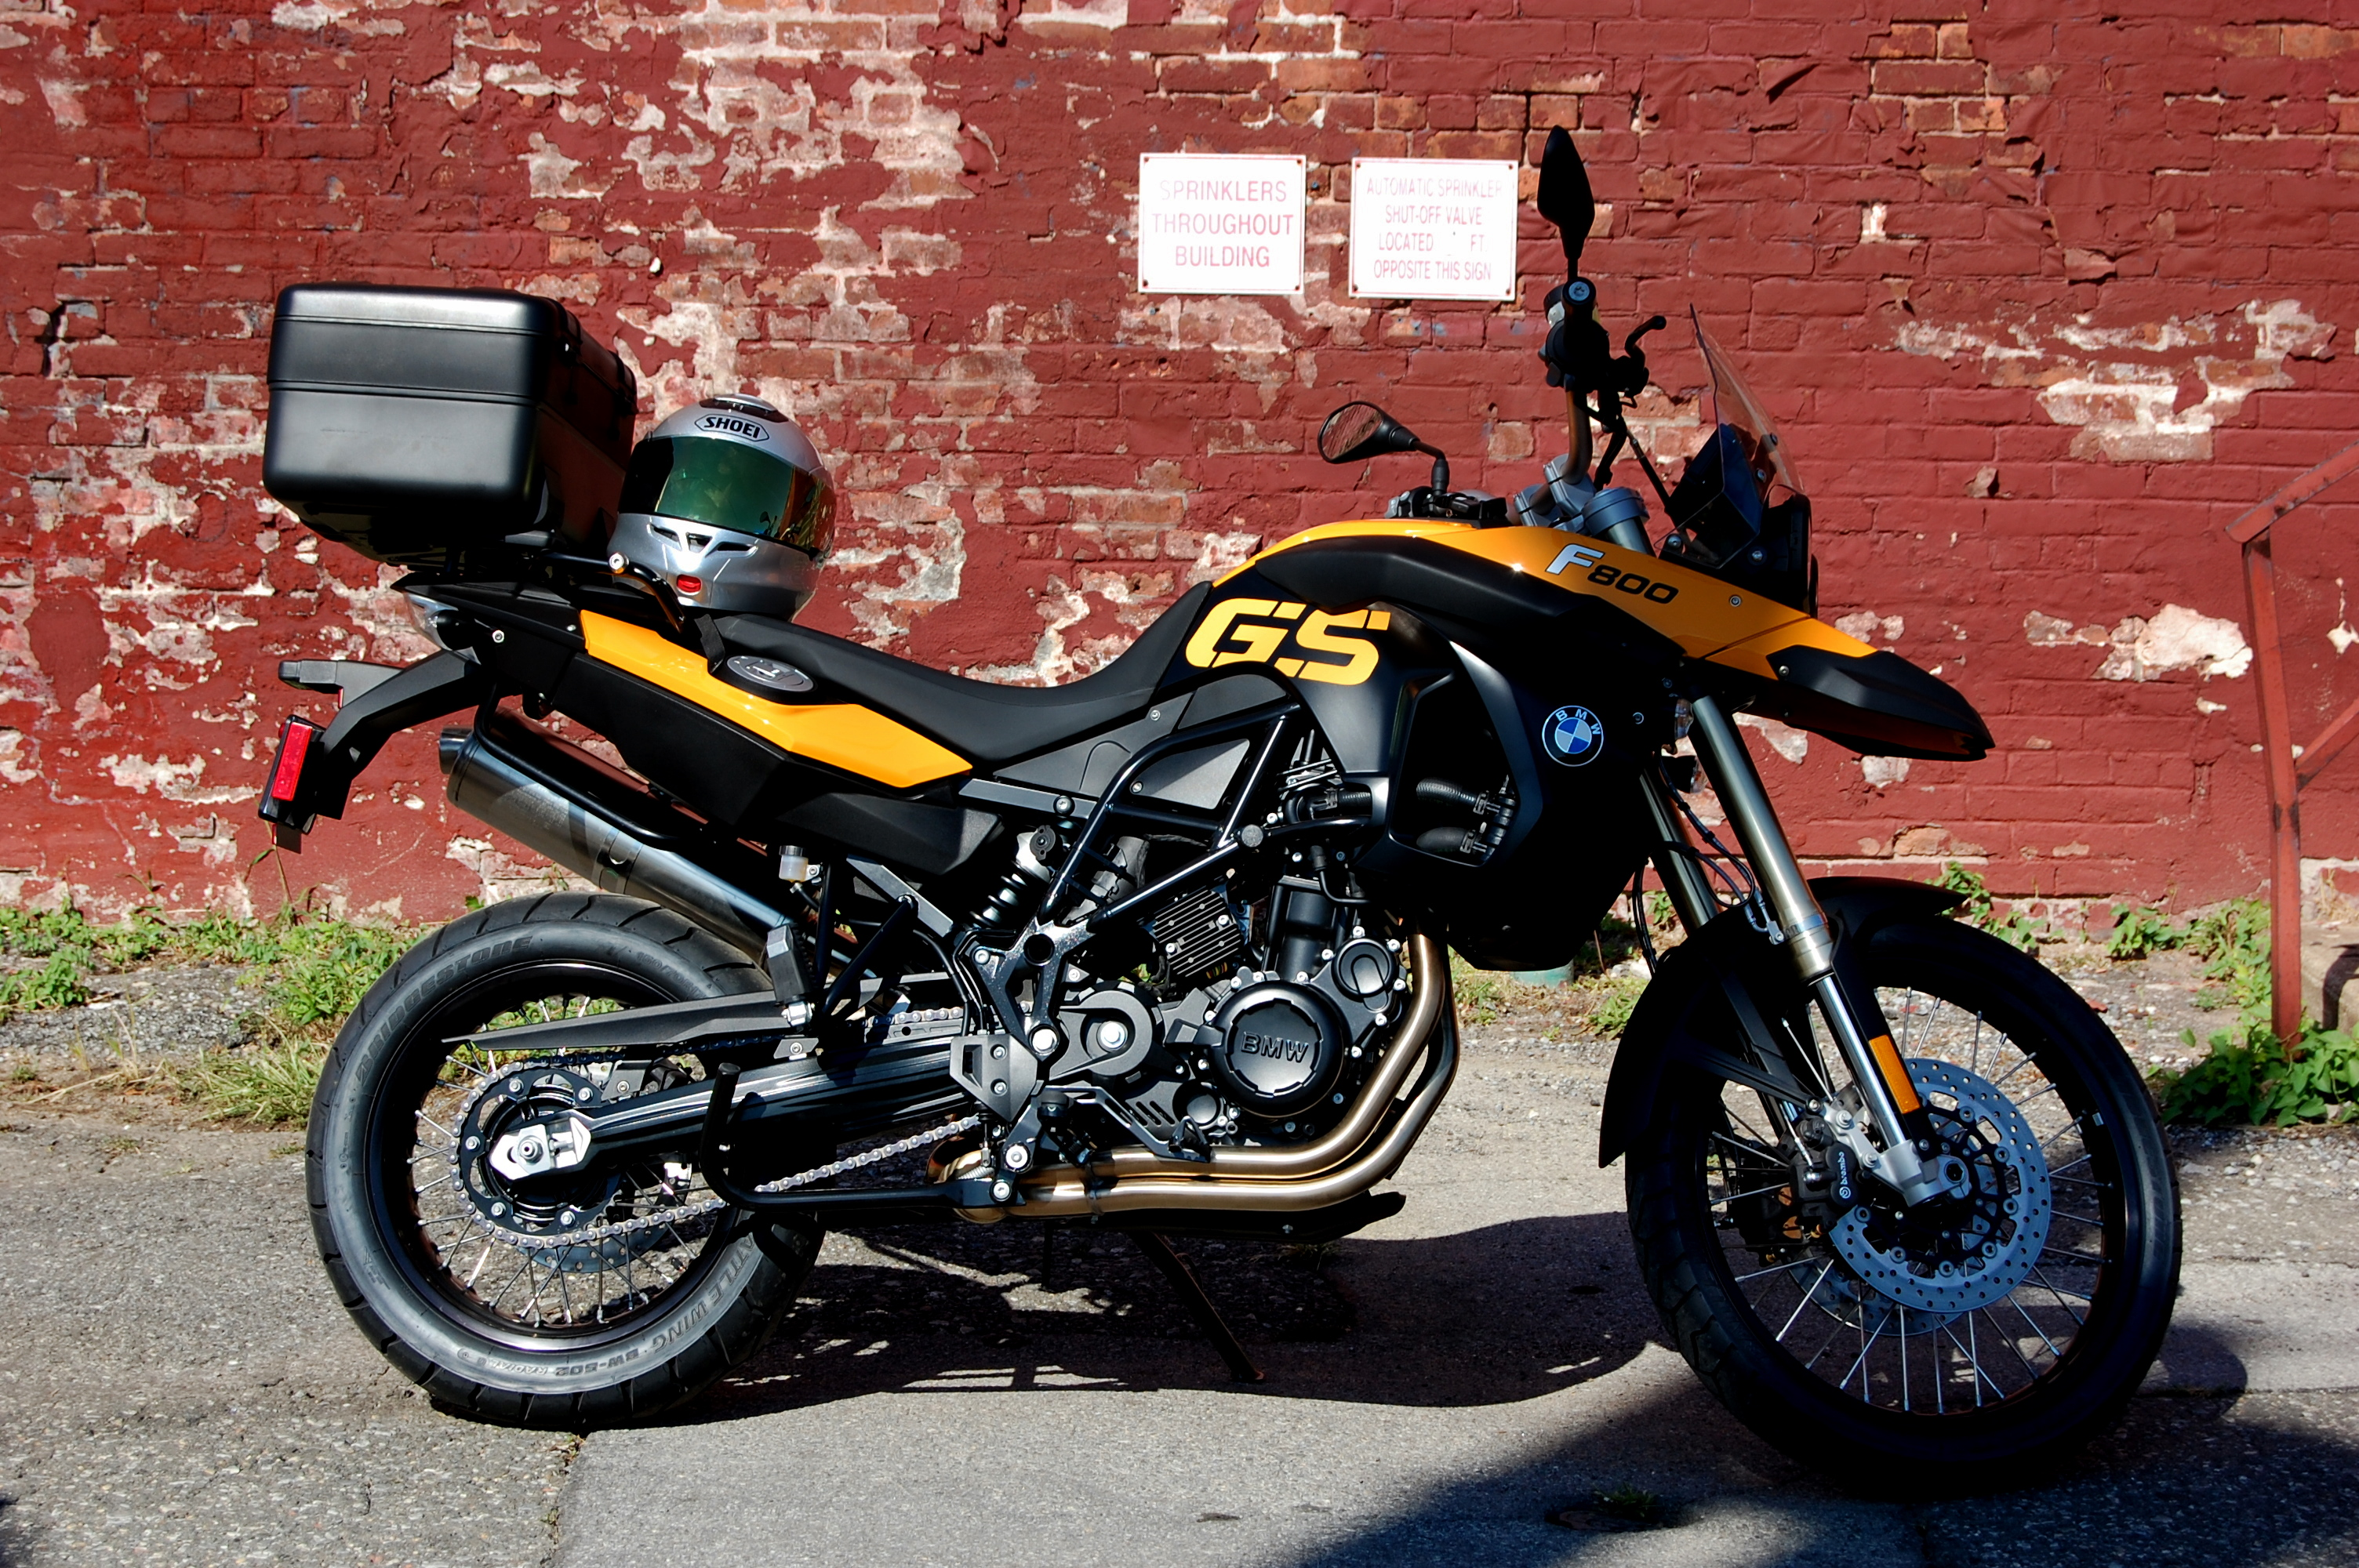 BMW R80GS 1995 images #6414